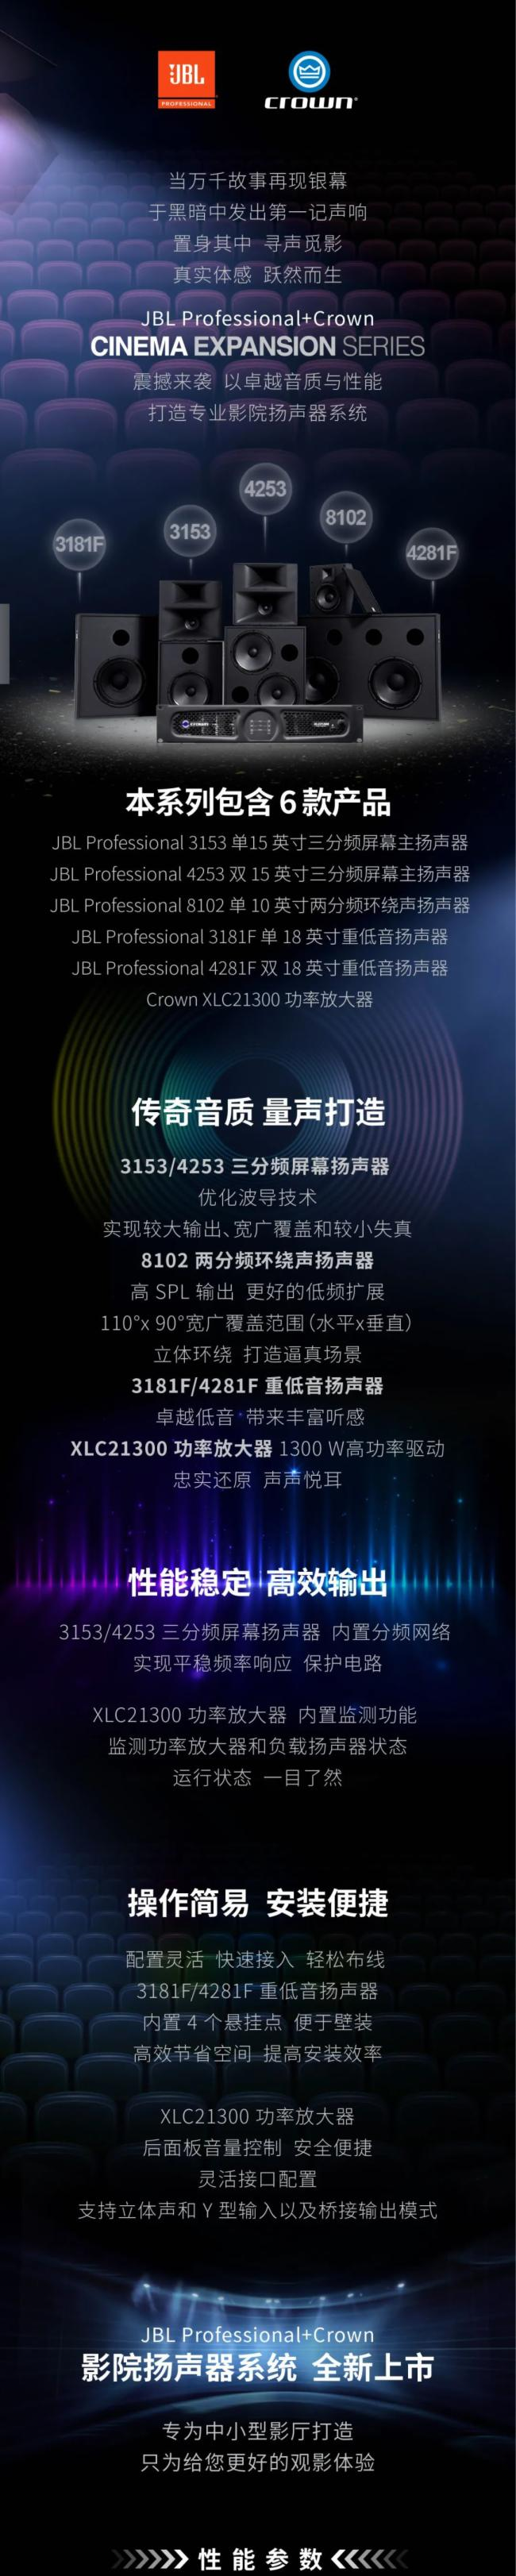 哈曼|JBL Professional+Crown Cinema Expansion 系列:寻声觅影 扣动人心